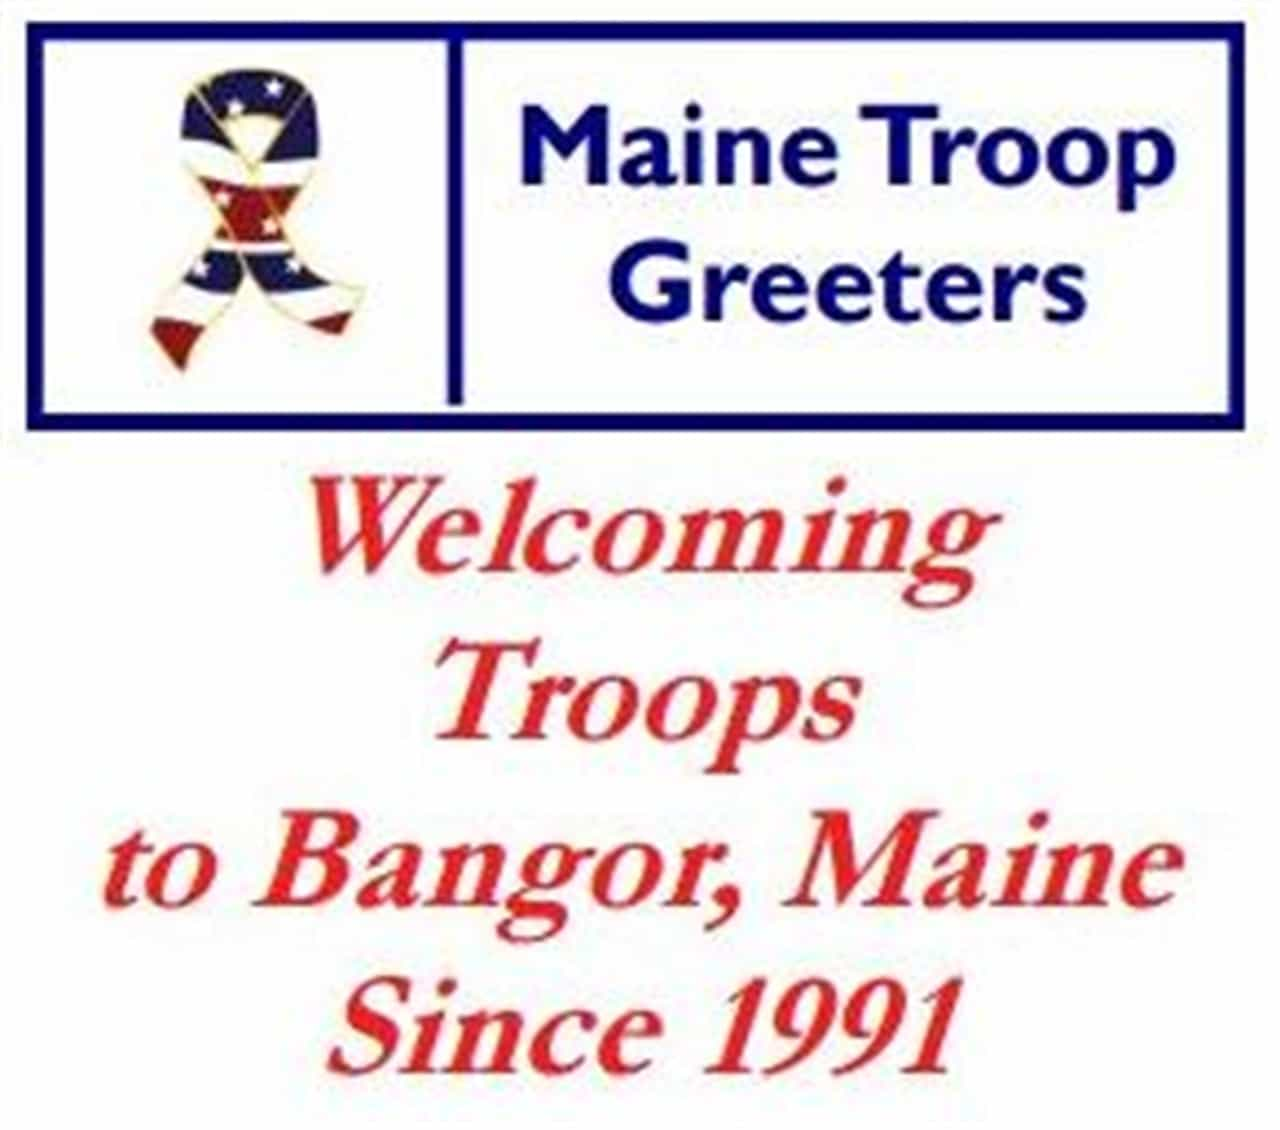 Thank you Maine Troop Greeters !